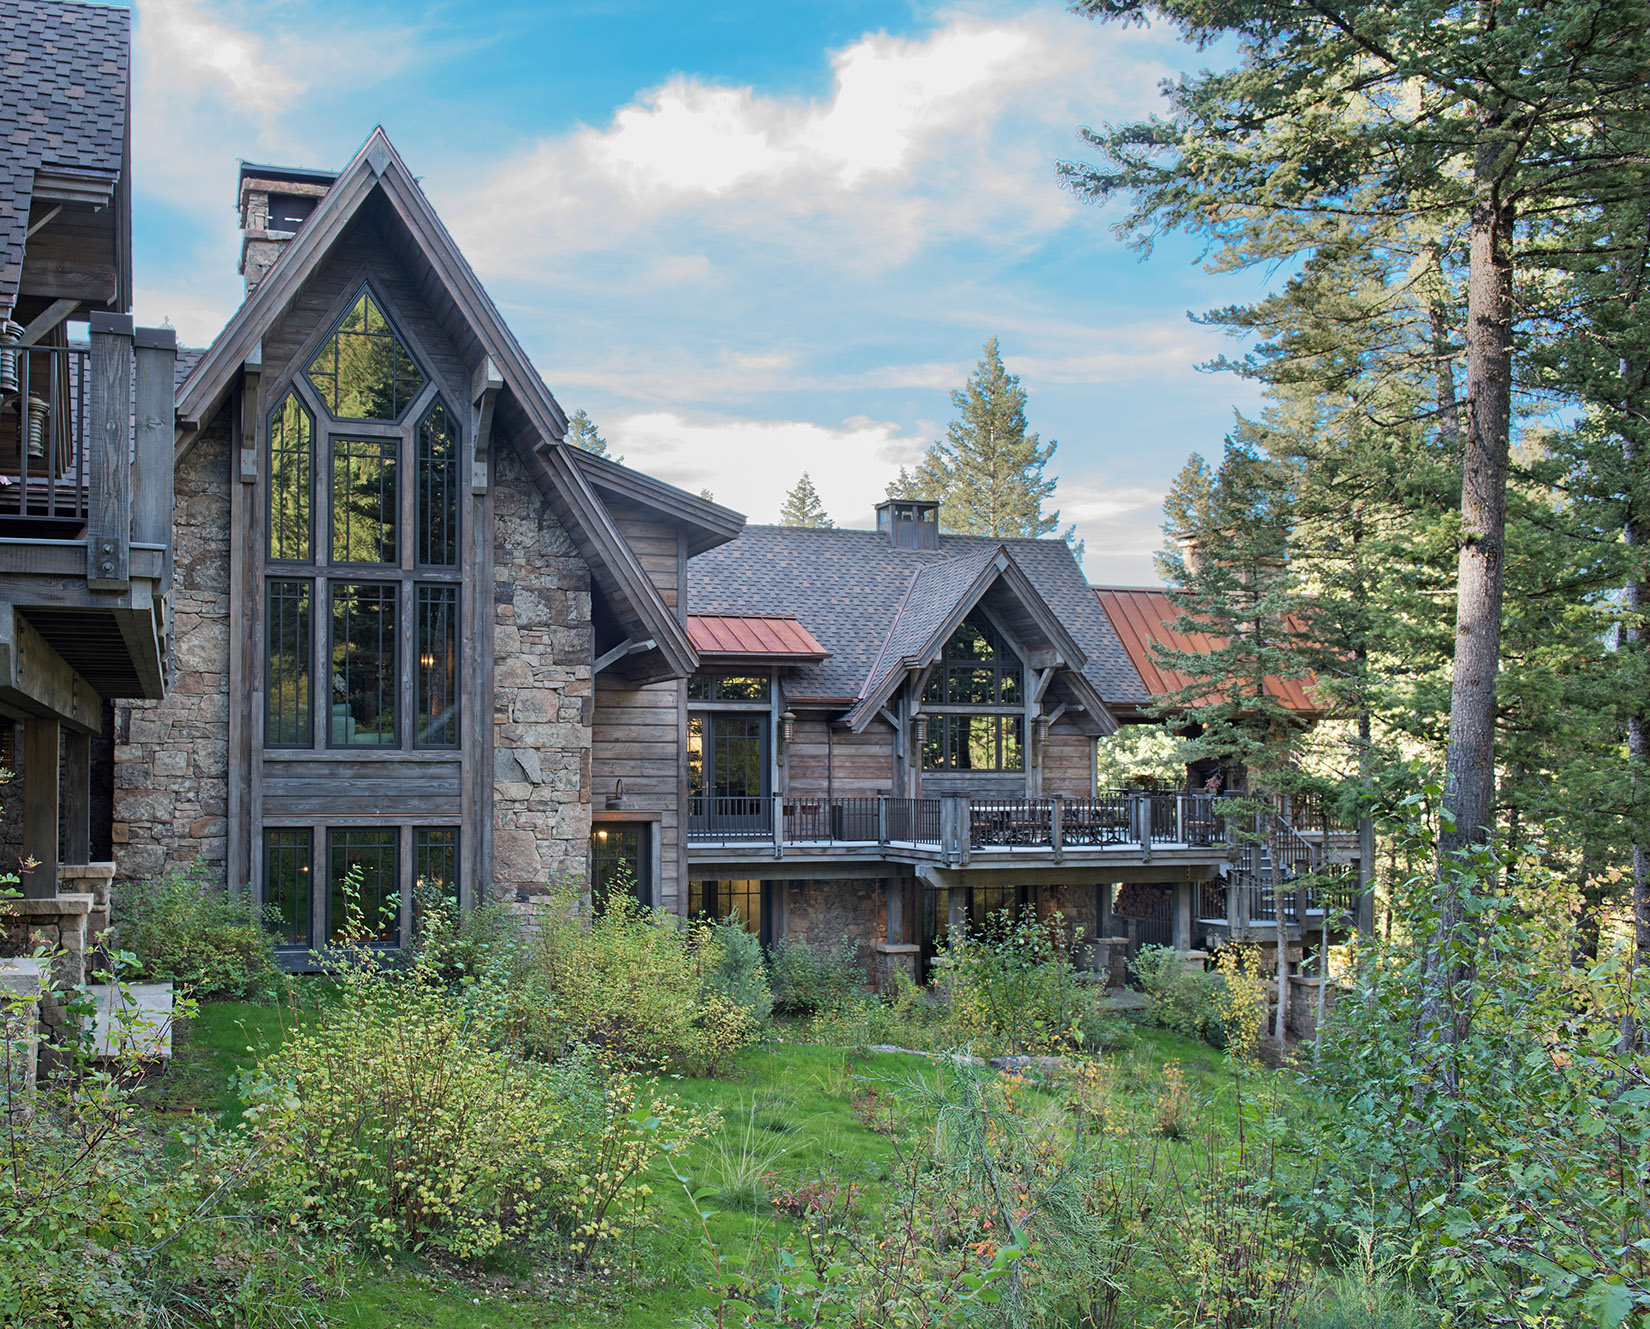 The home backs up to forest service land and has a quiet, privacy to it.